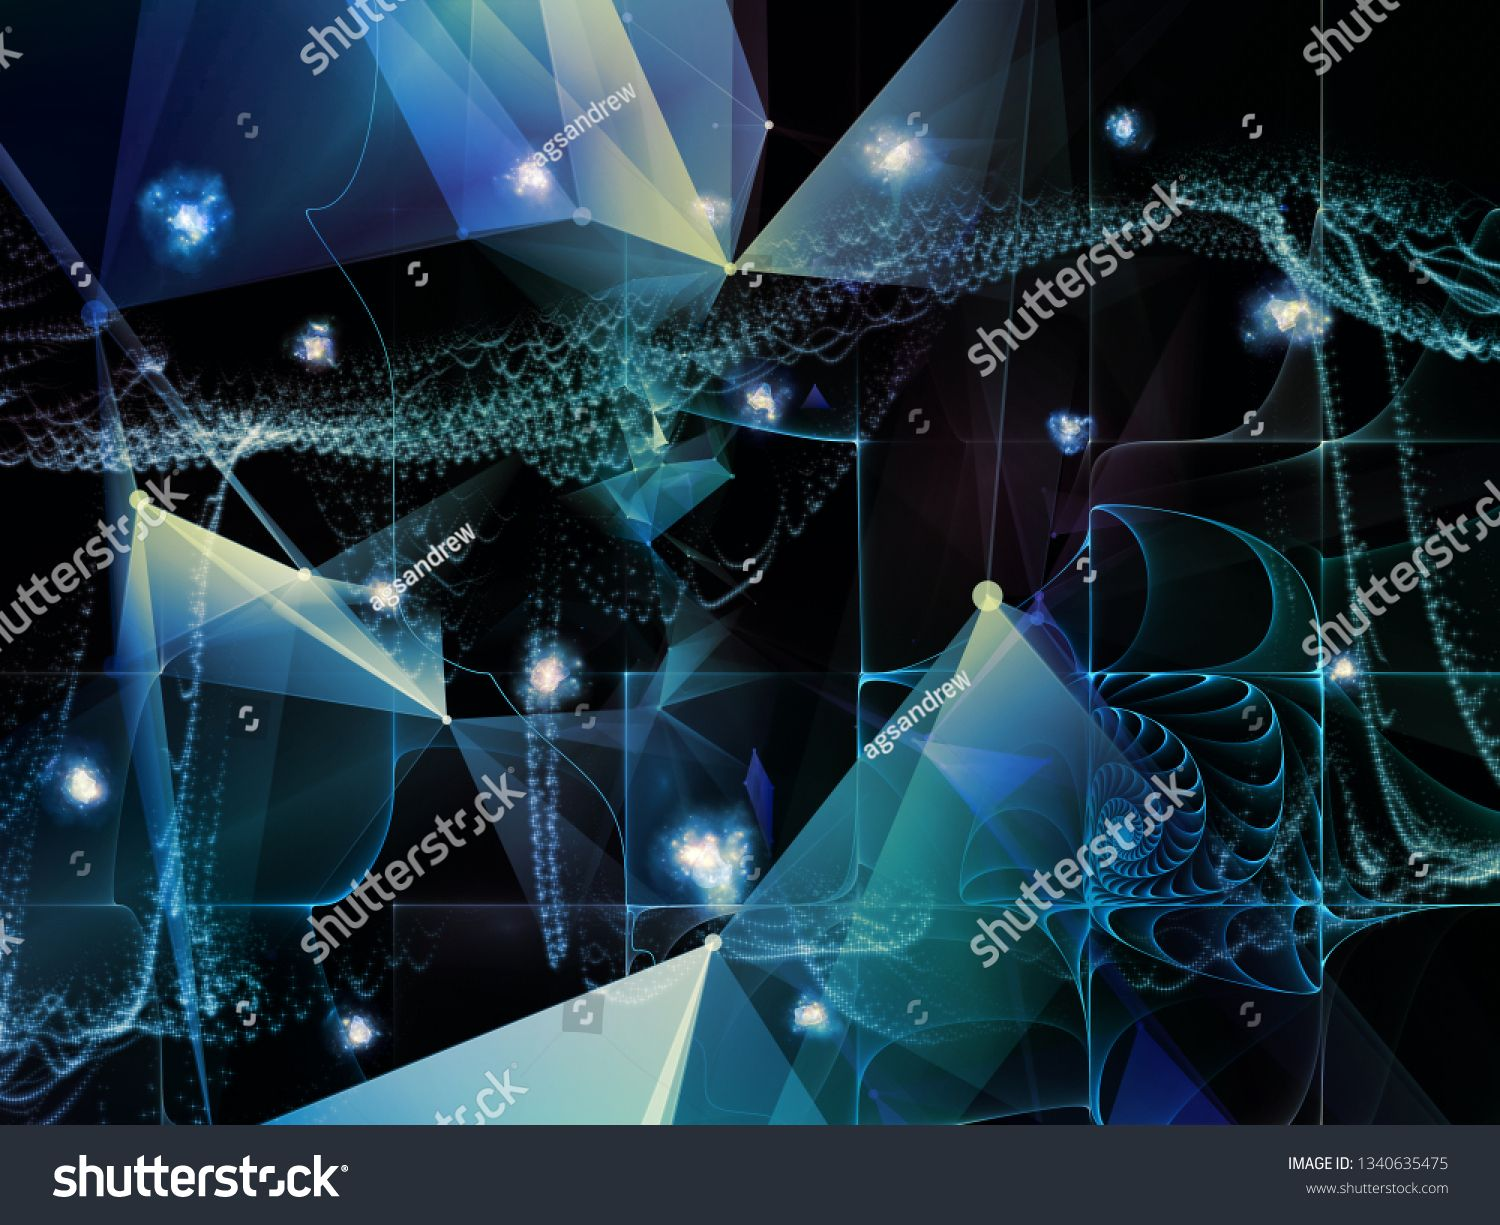 Digital Dreams Series Composition Of Technology Background With